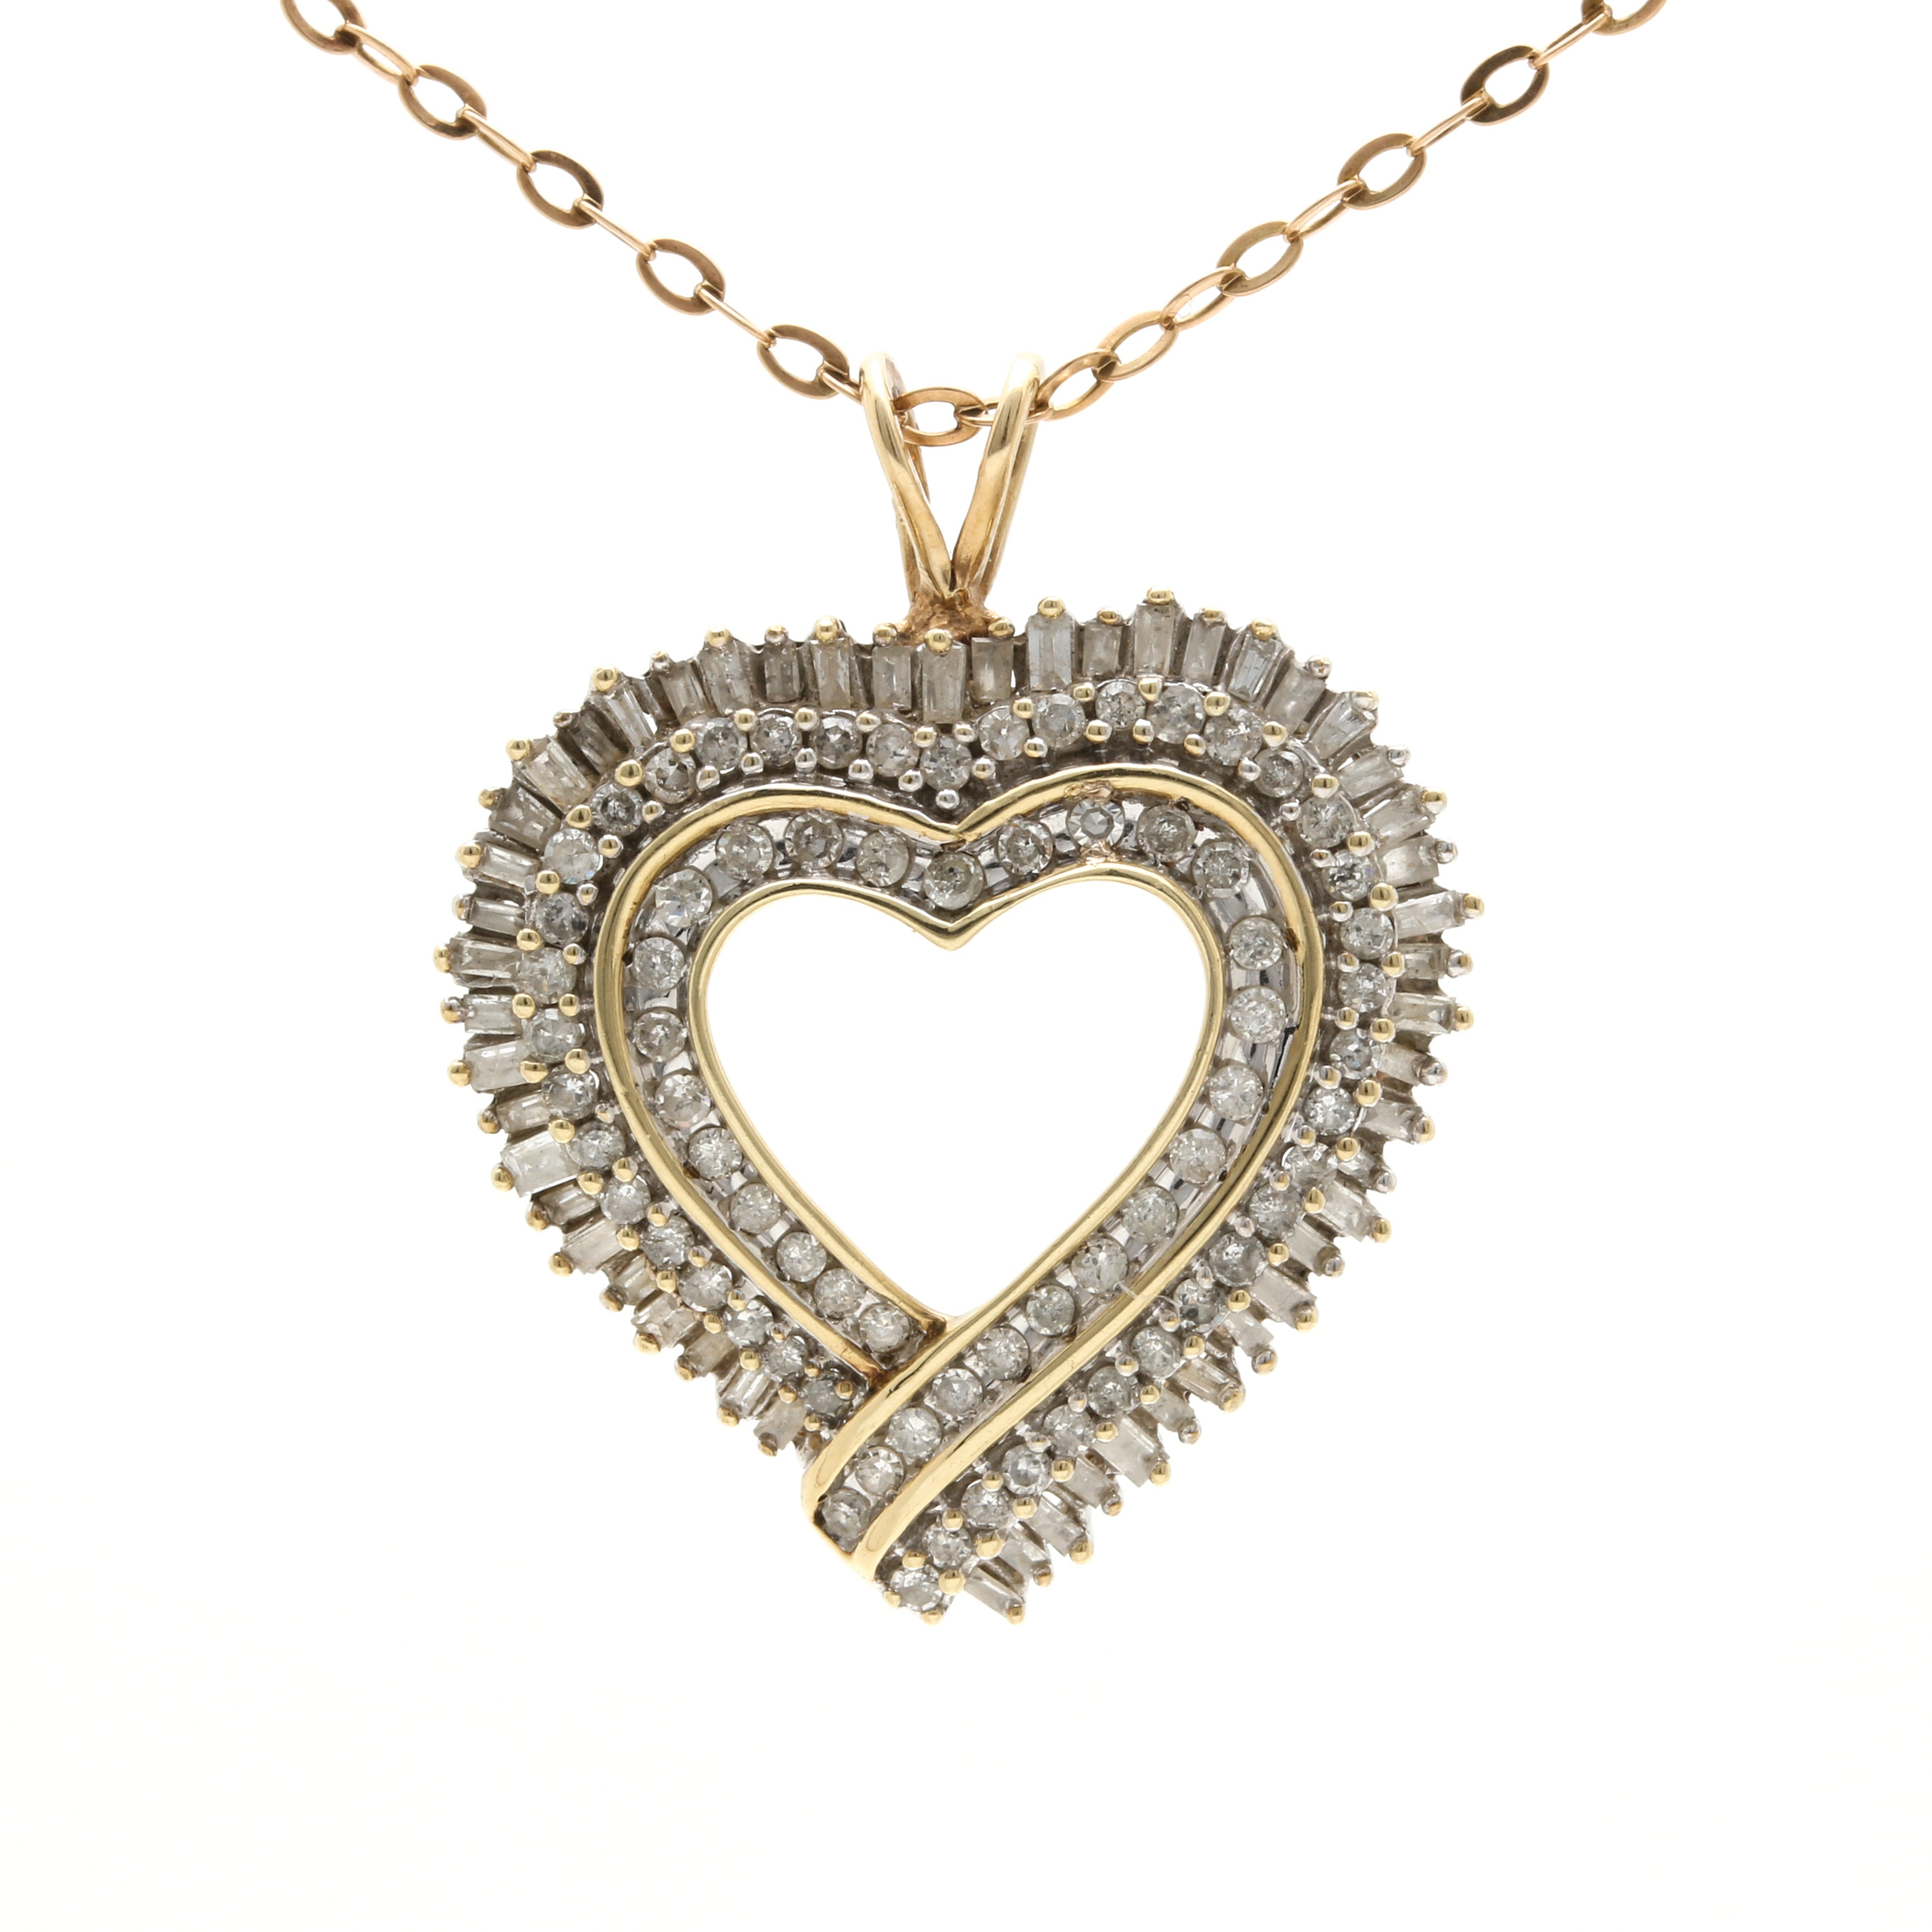 10K White and Yellow Gold 1.42 CTW Diamond Heart Necklace